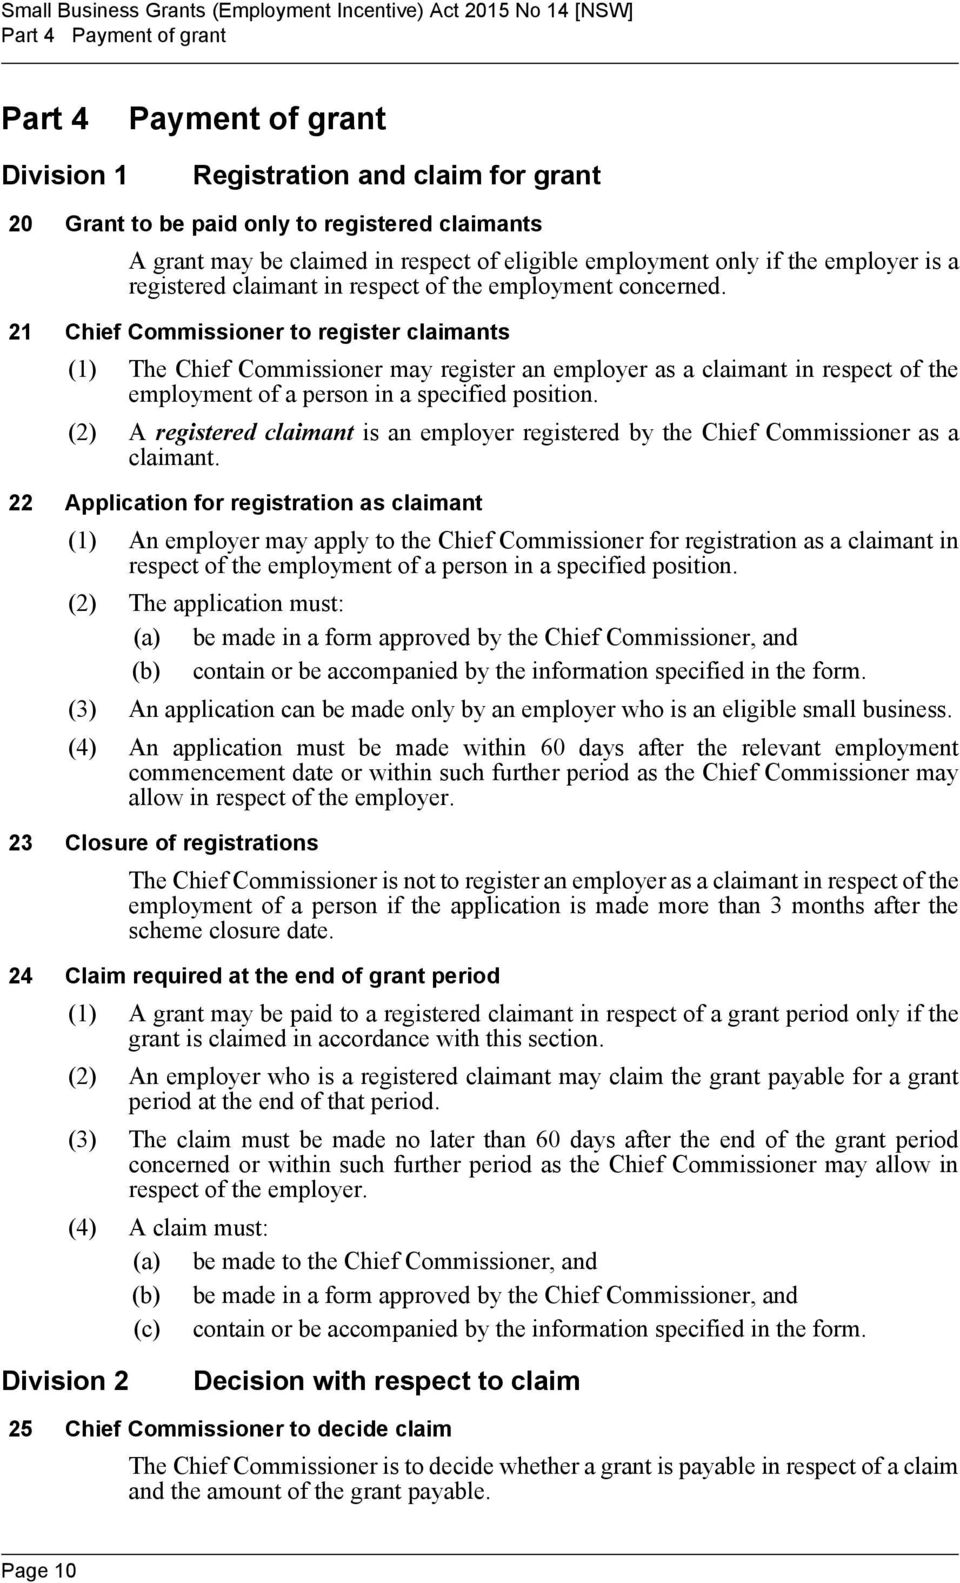 21 Chief Commissioner to register claimants (1) The Chief Commissioner may register an employer as a claimant in respect of the employment of a person in a specified position.